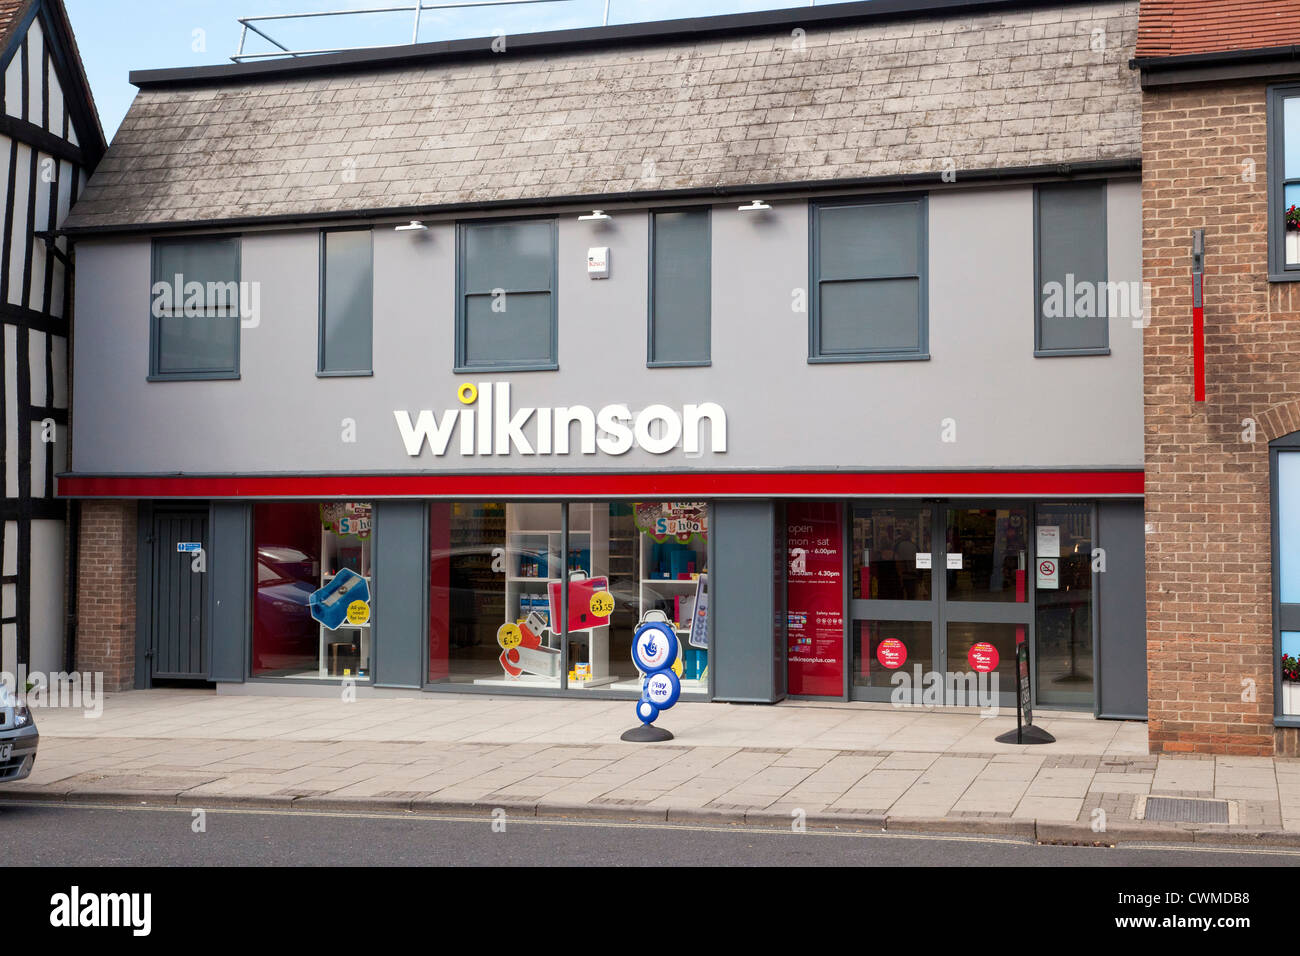 Wilkinson store in the UK - Stock Image